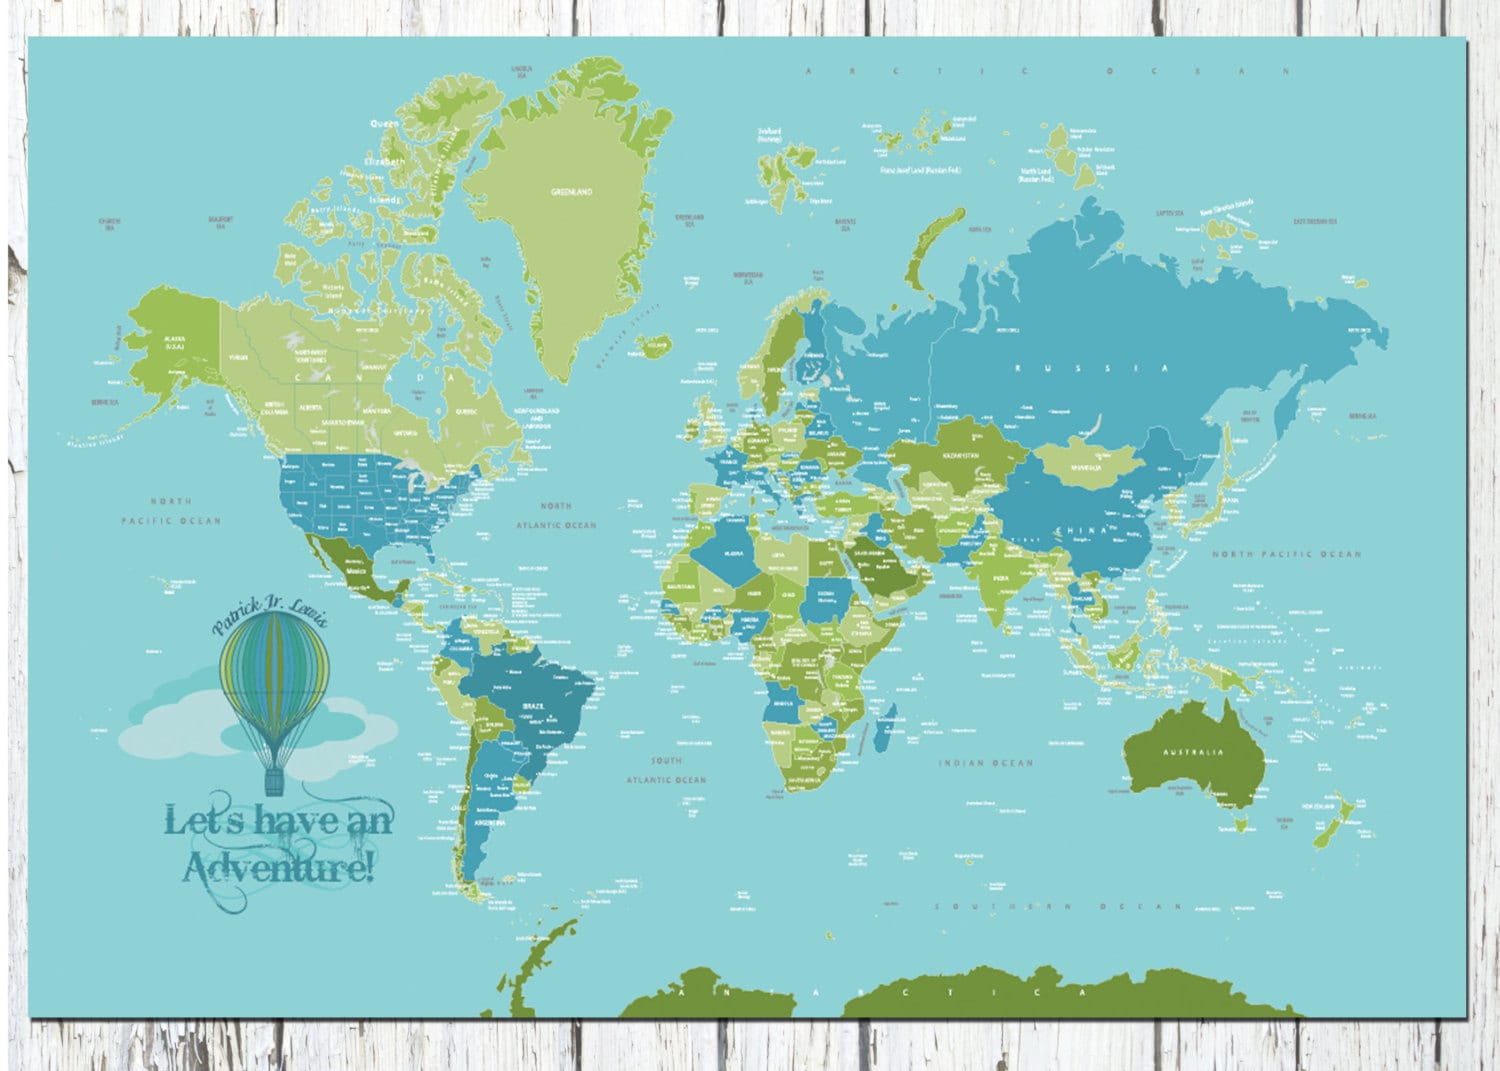 World map poster country names 24x36 travel artwork travel zoom sciox Image collections